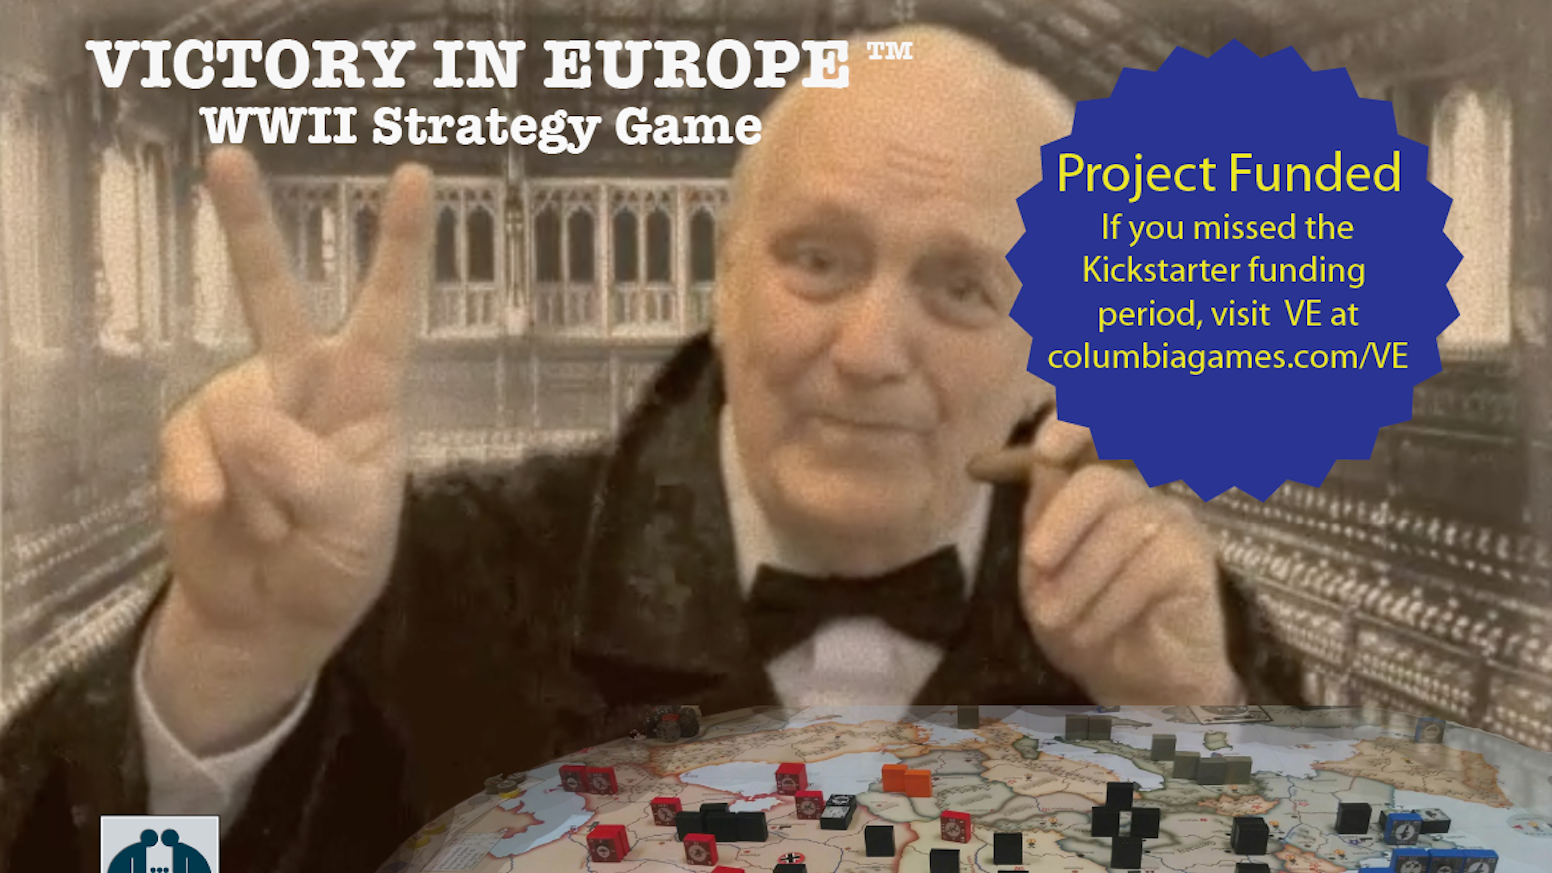 V. E. is a new WW2 block wargame for 2-3 players; plays in 3-5 hrs. on an oval map of Europe. Visit www.columbiagames.com/VE